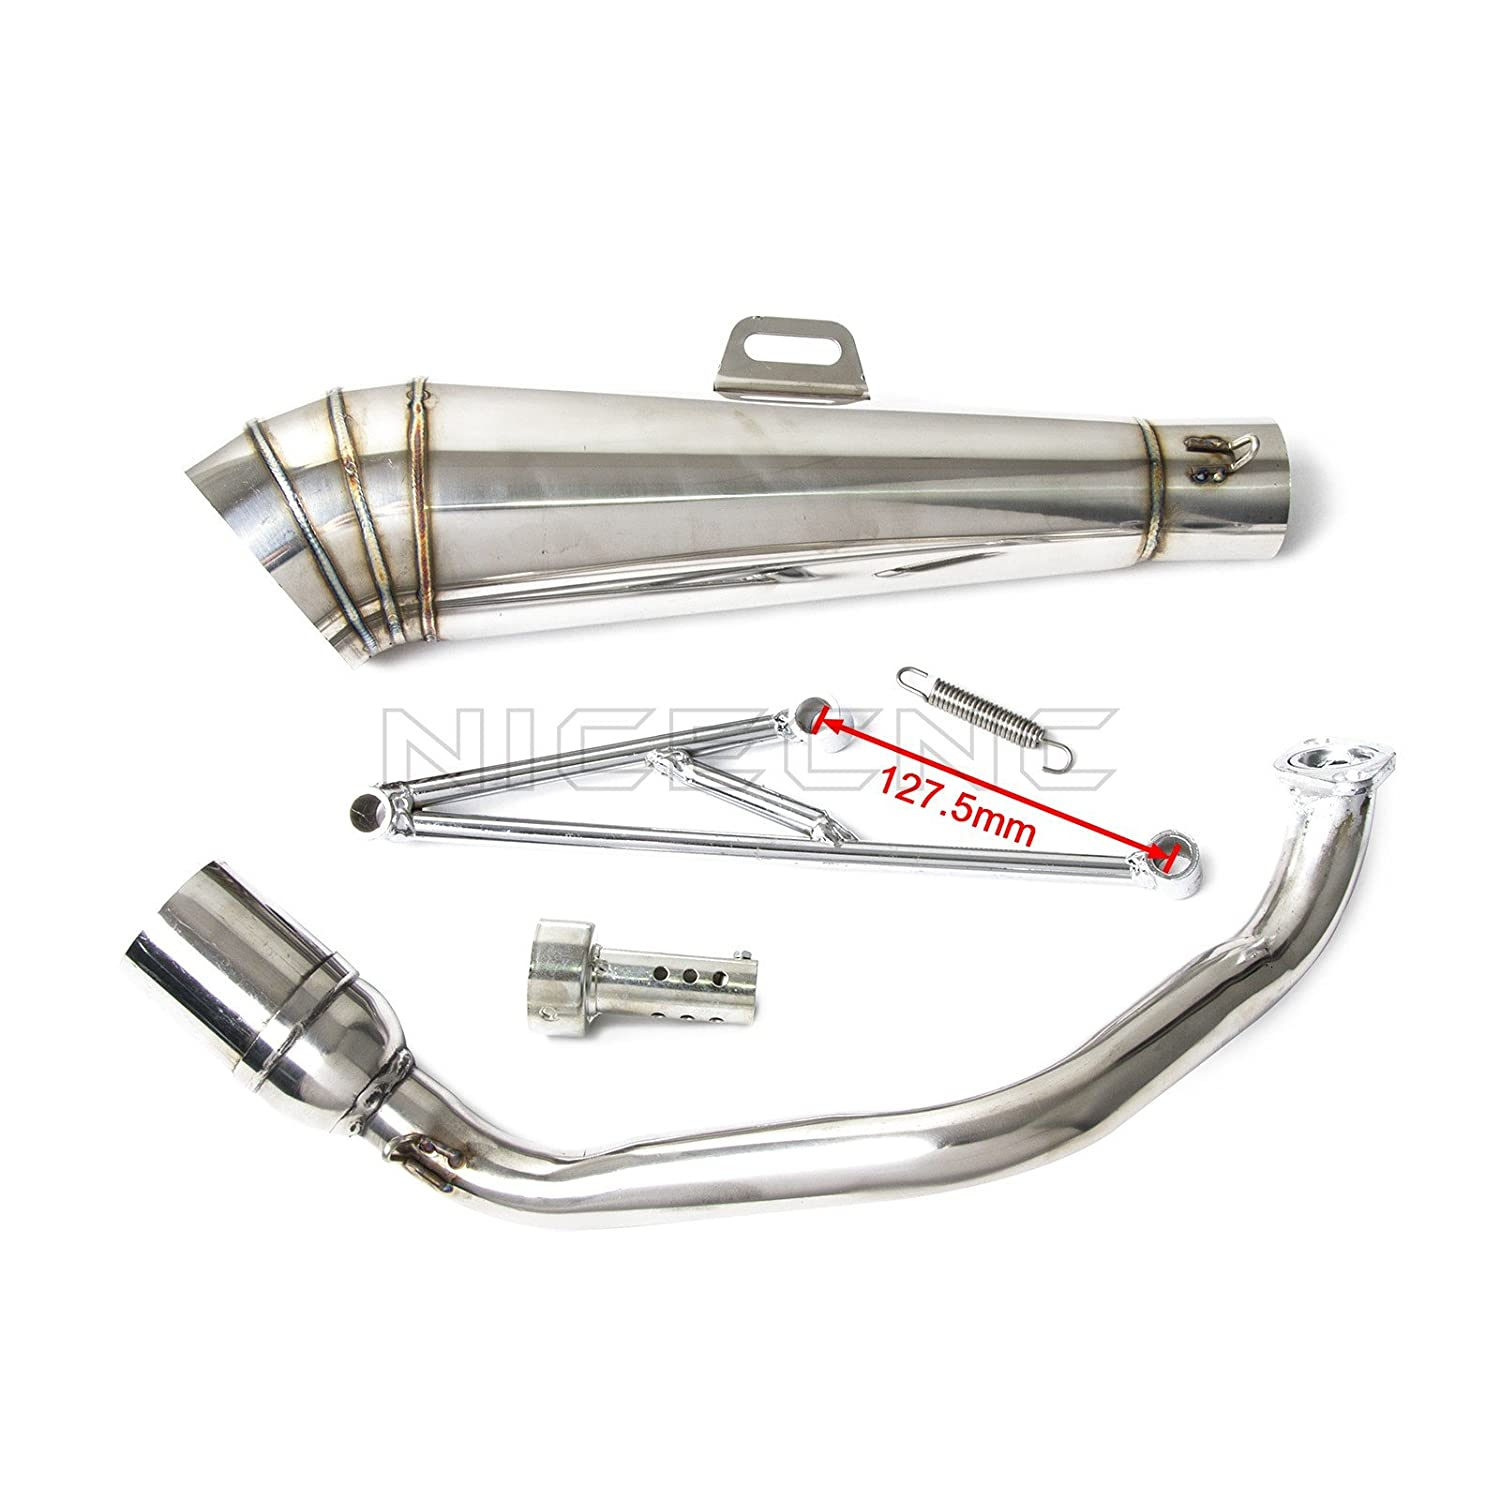 NICECNC Motorcycle Stainless Steel Exhaust Muffler System